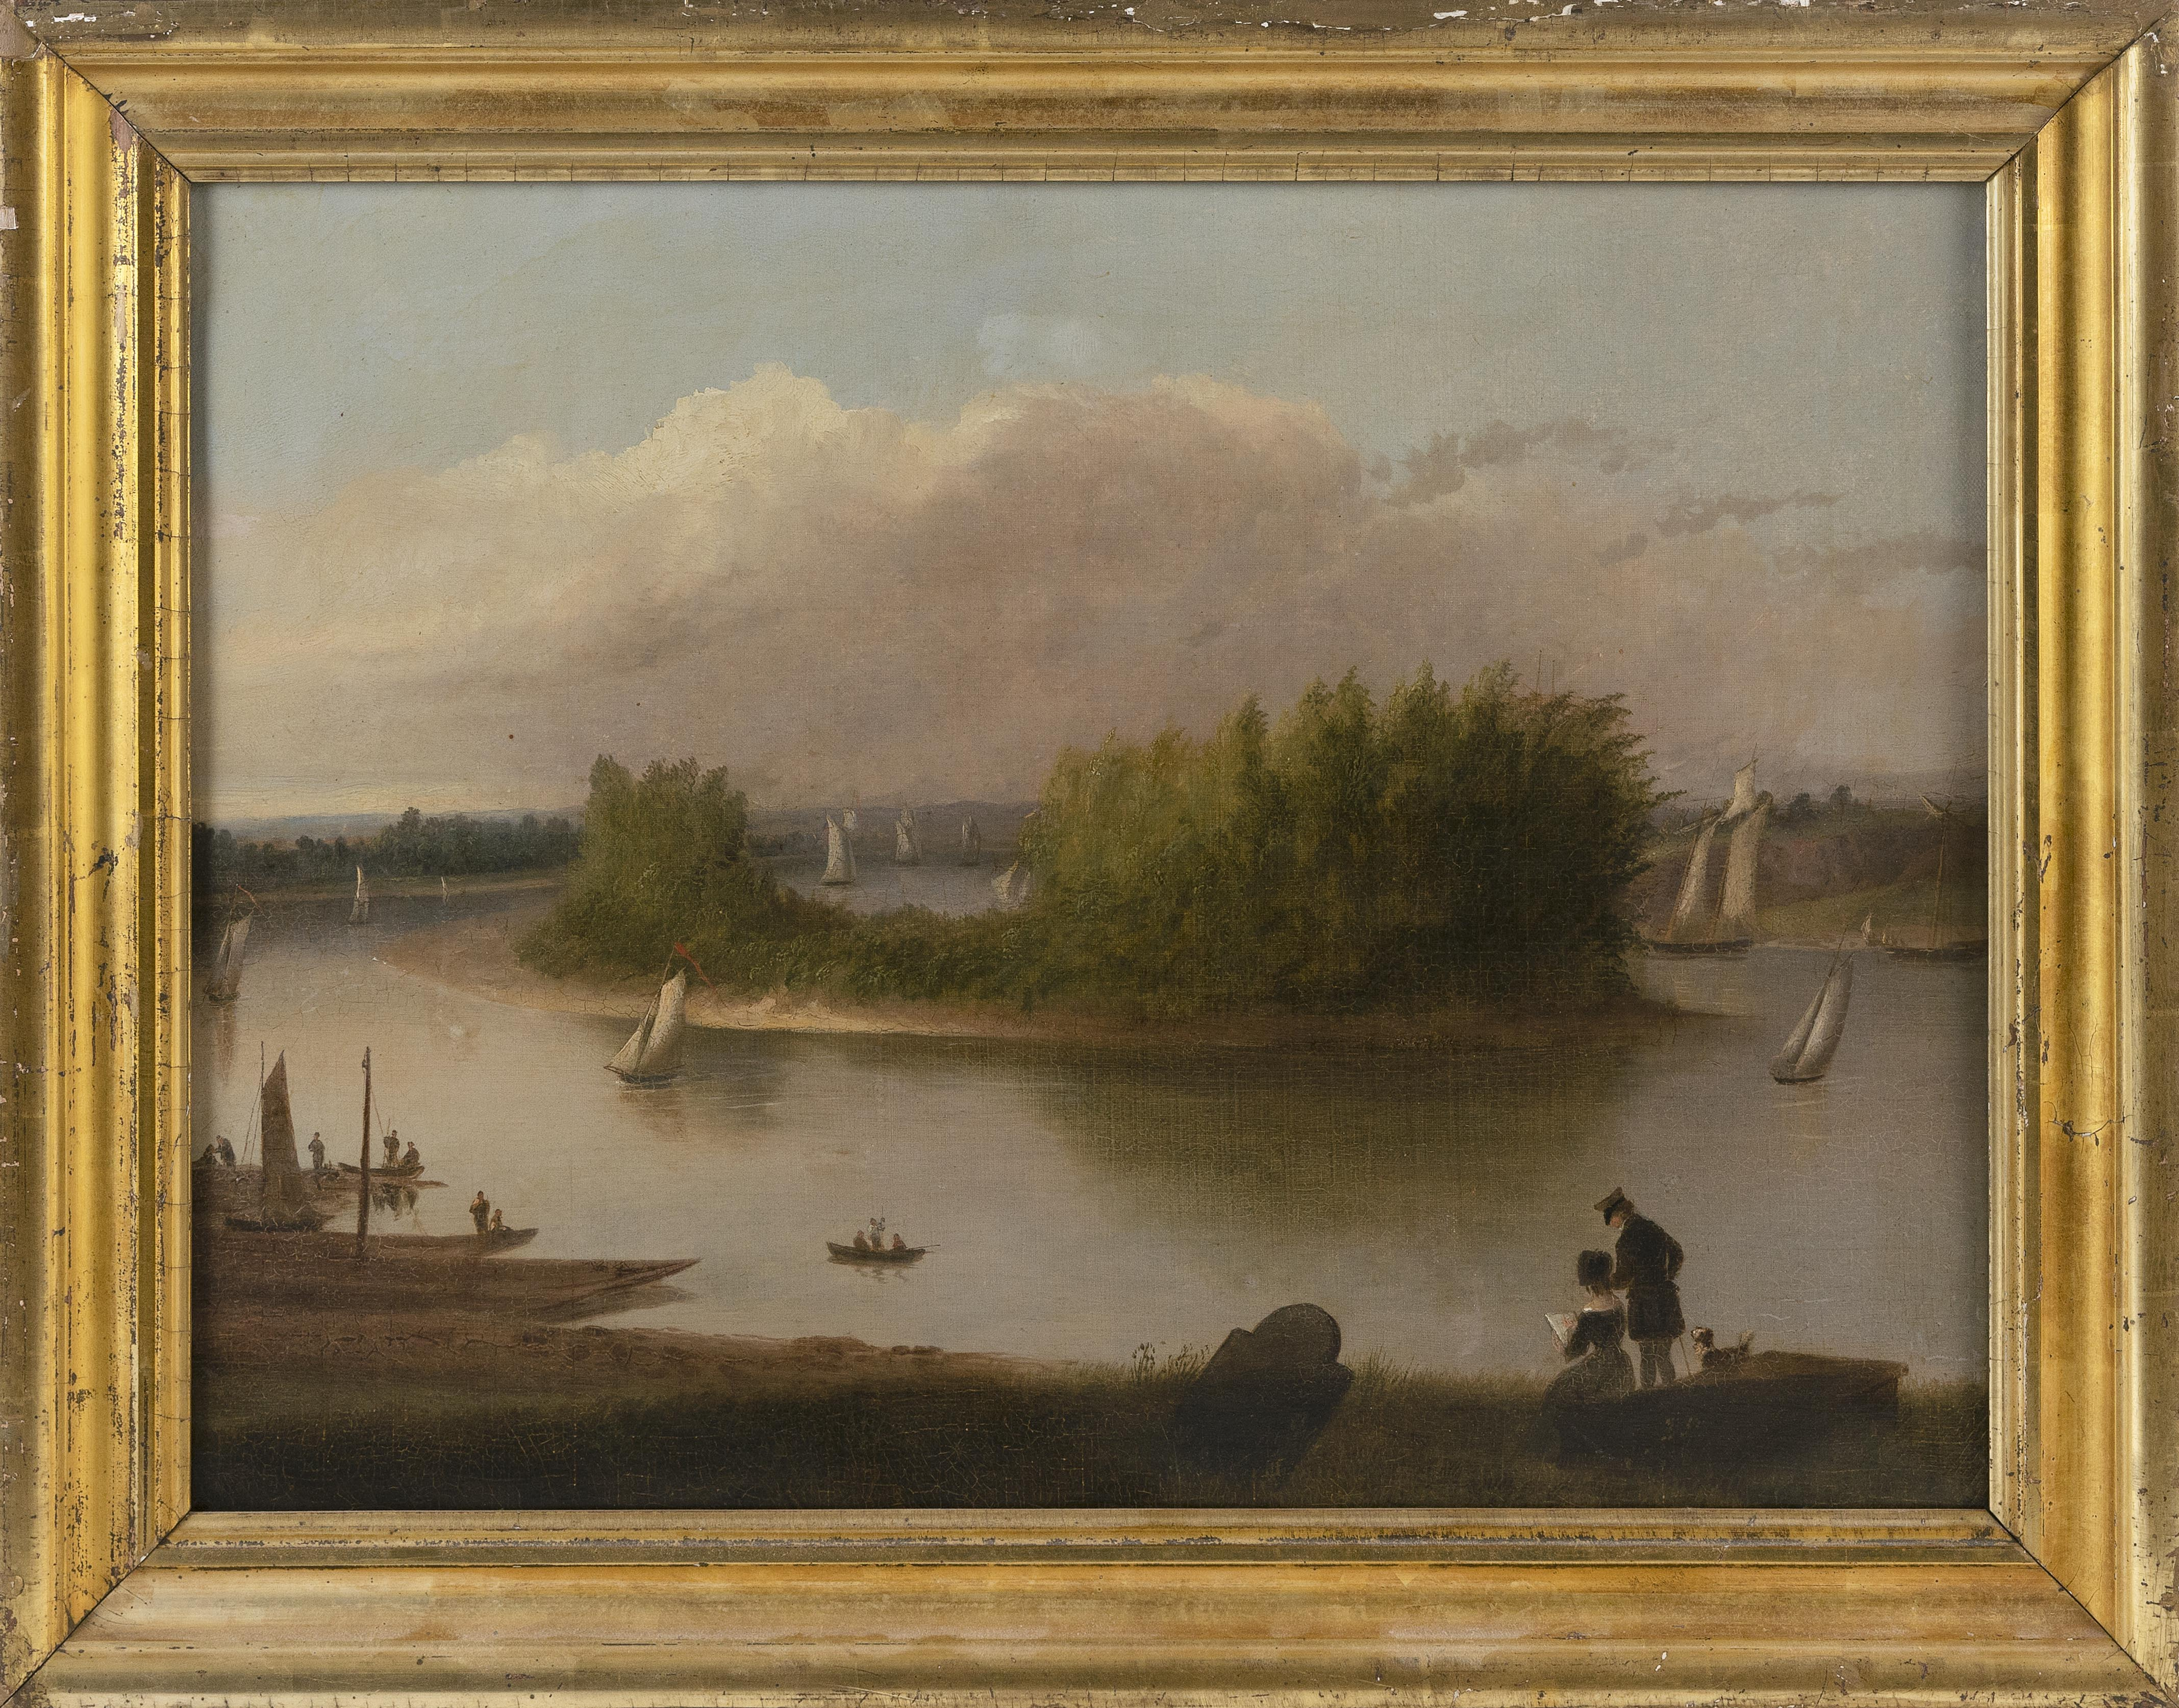 """ALVAN FISHER (Massachusetts, 1792-1863), """"View of the Connecticut River at Middletown""""., Oil on canvas, 18"""" x 24"""". Framed 21.75"""". 27.75""""."""